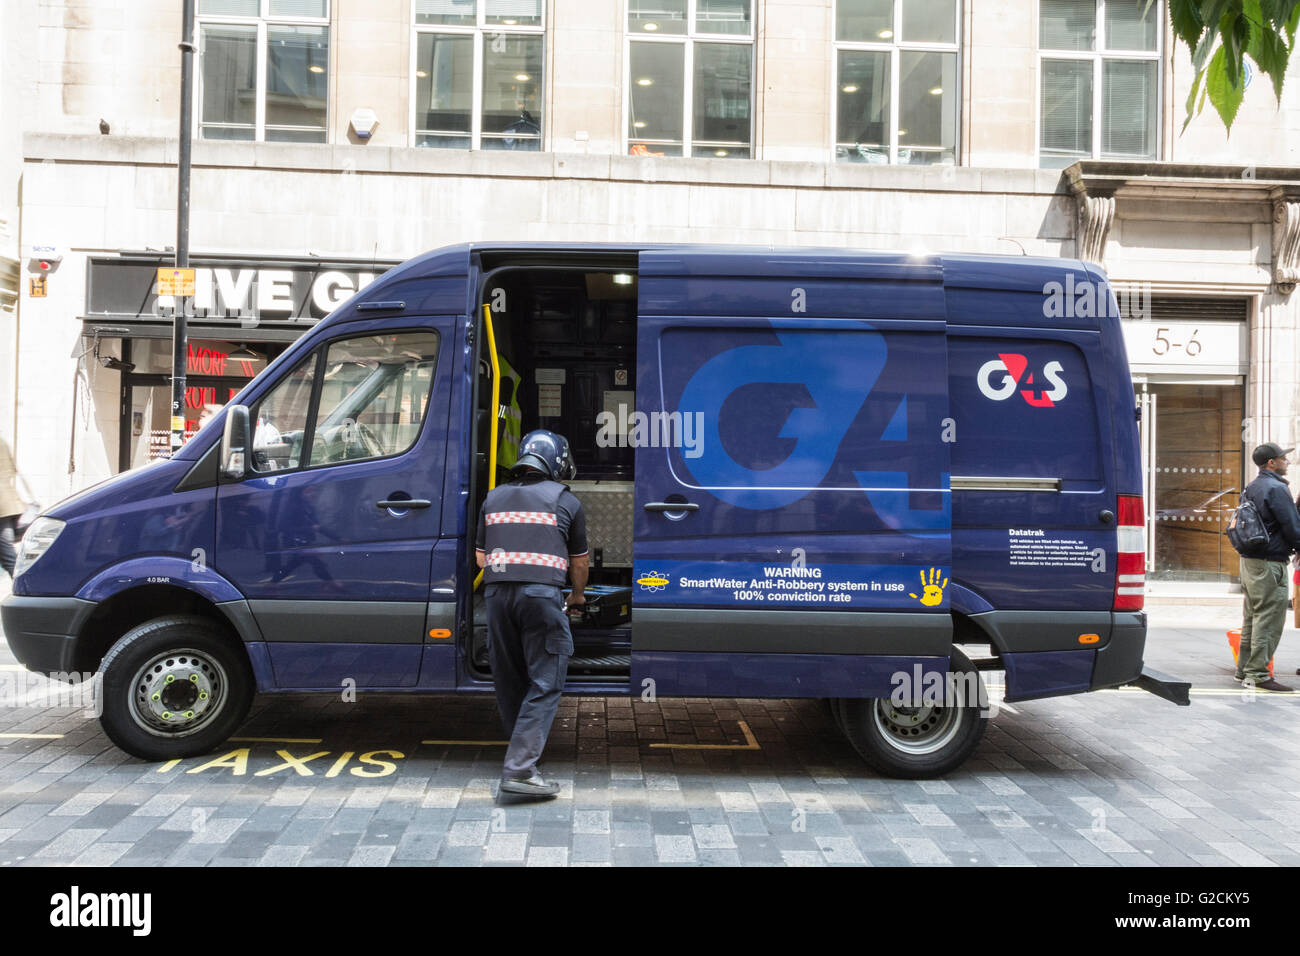 fc9ffbc48e A G4S security van being unloaded in central London